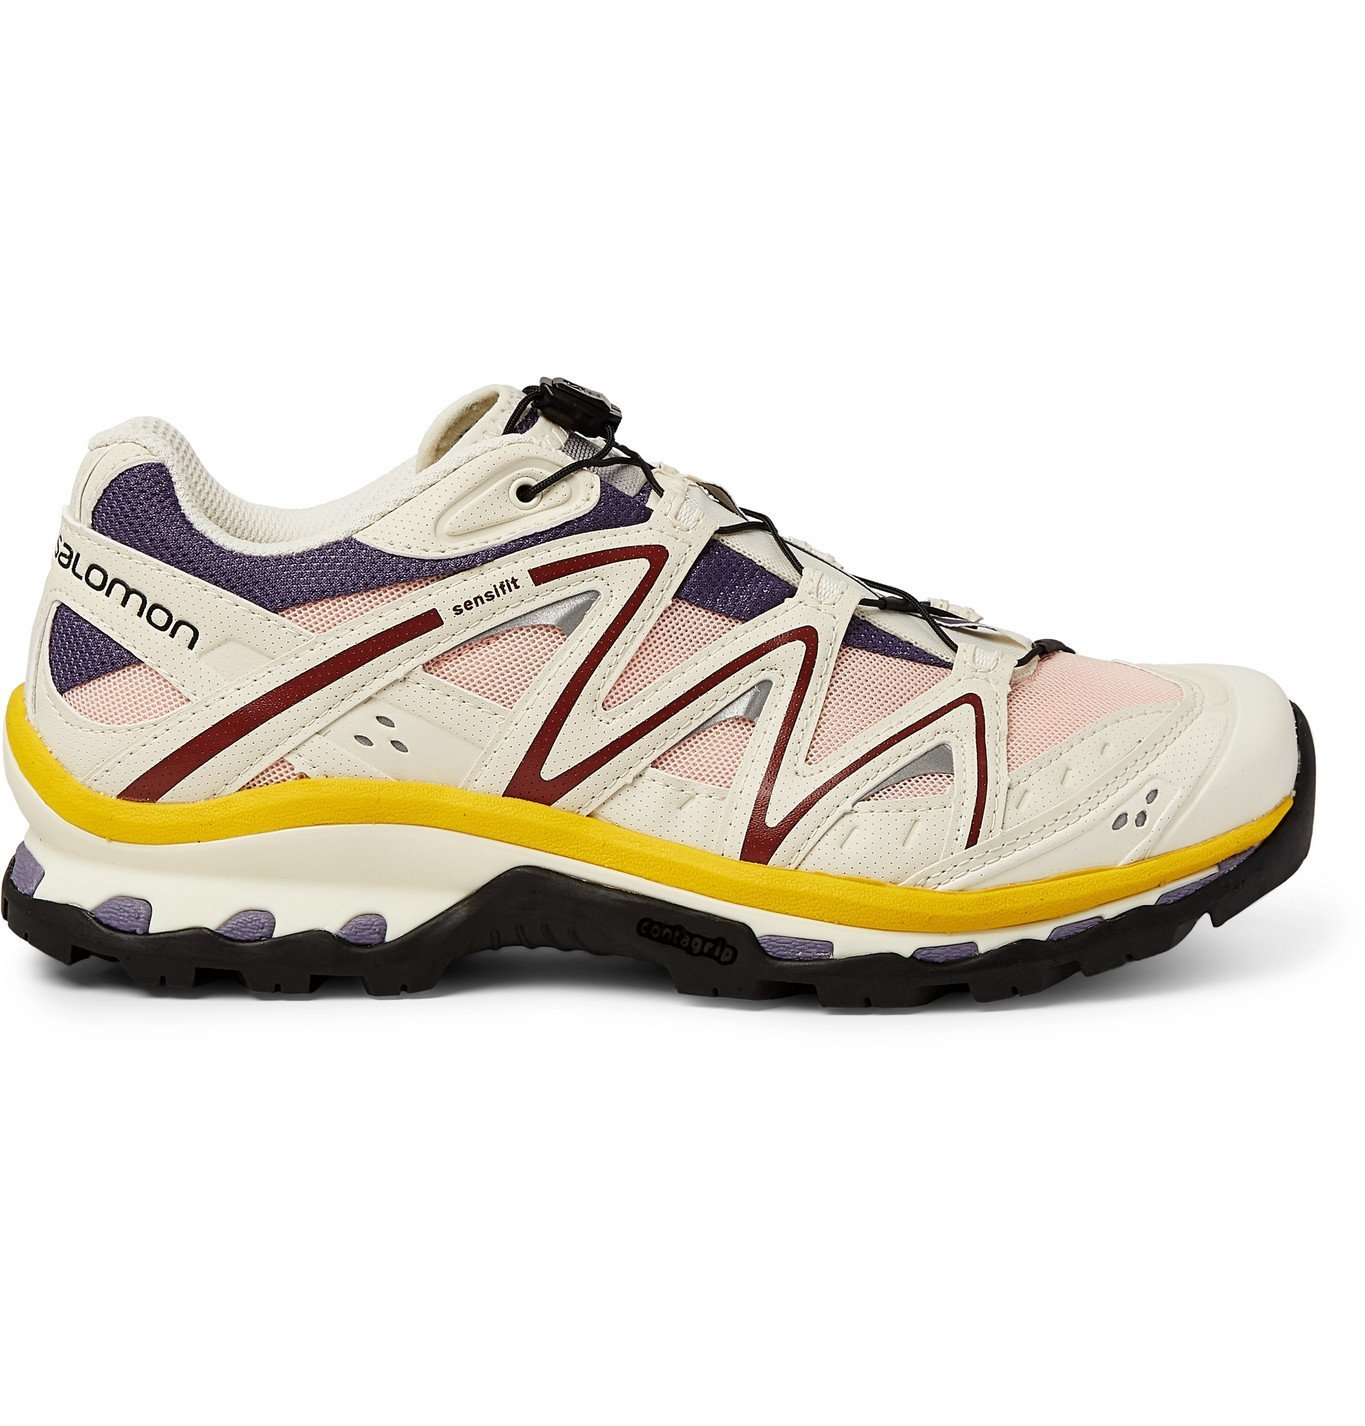 Photo: Salomon - XT-QUEST ADV Rubber and Mesh Running Sneakers - White